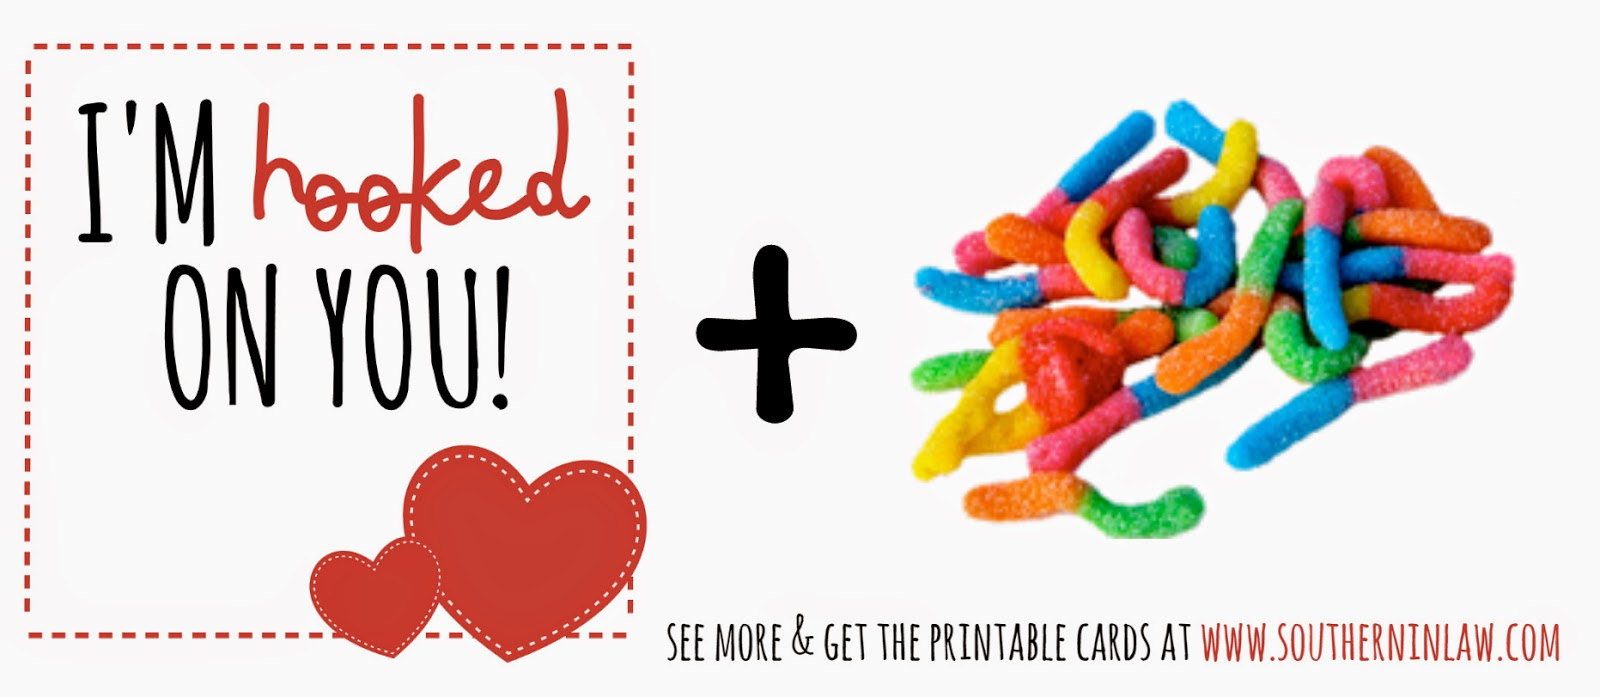 I'm hooked on you - Sour worms Valentines Gift Idea - Punny Valentines Gift Ideas Free Printable Valentines Cards